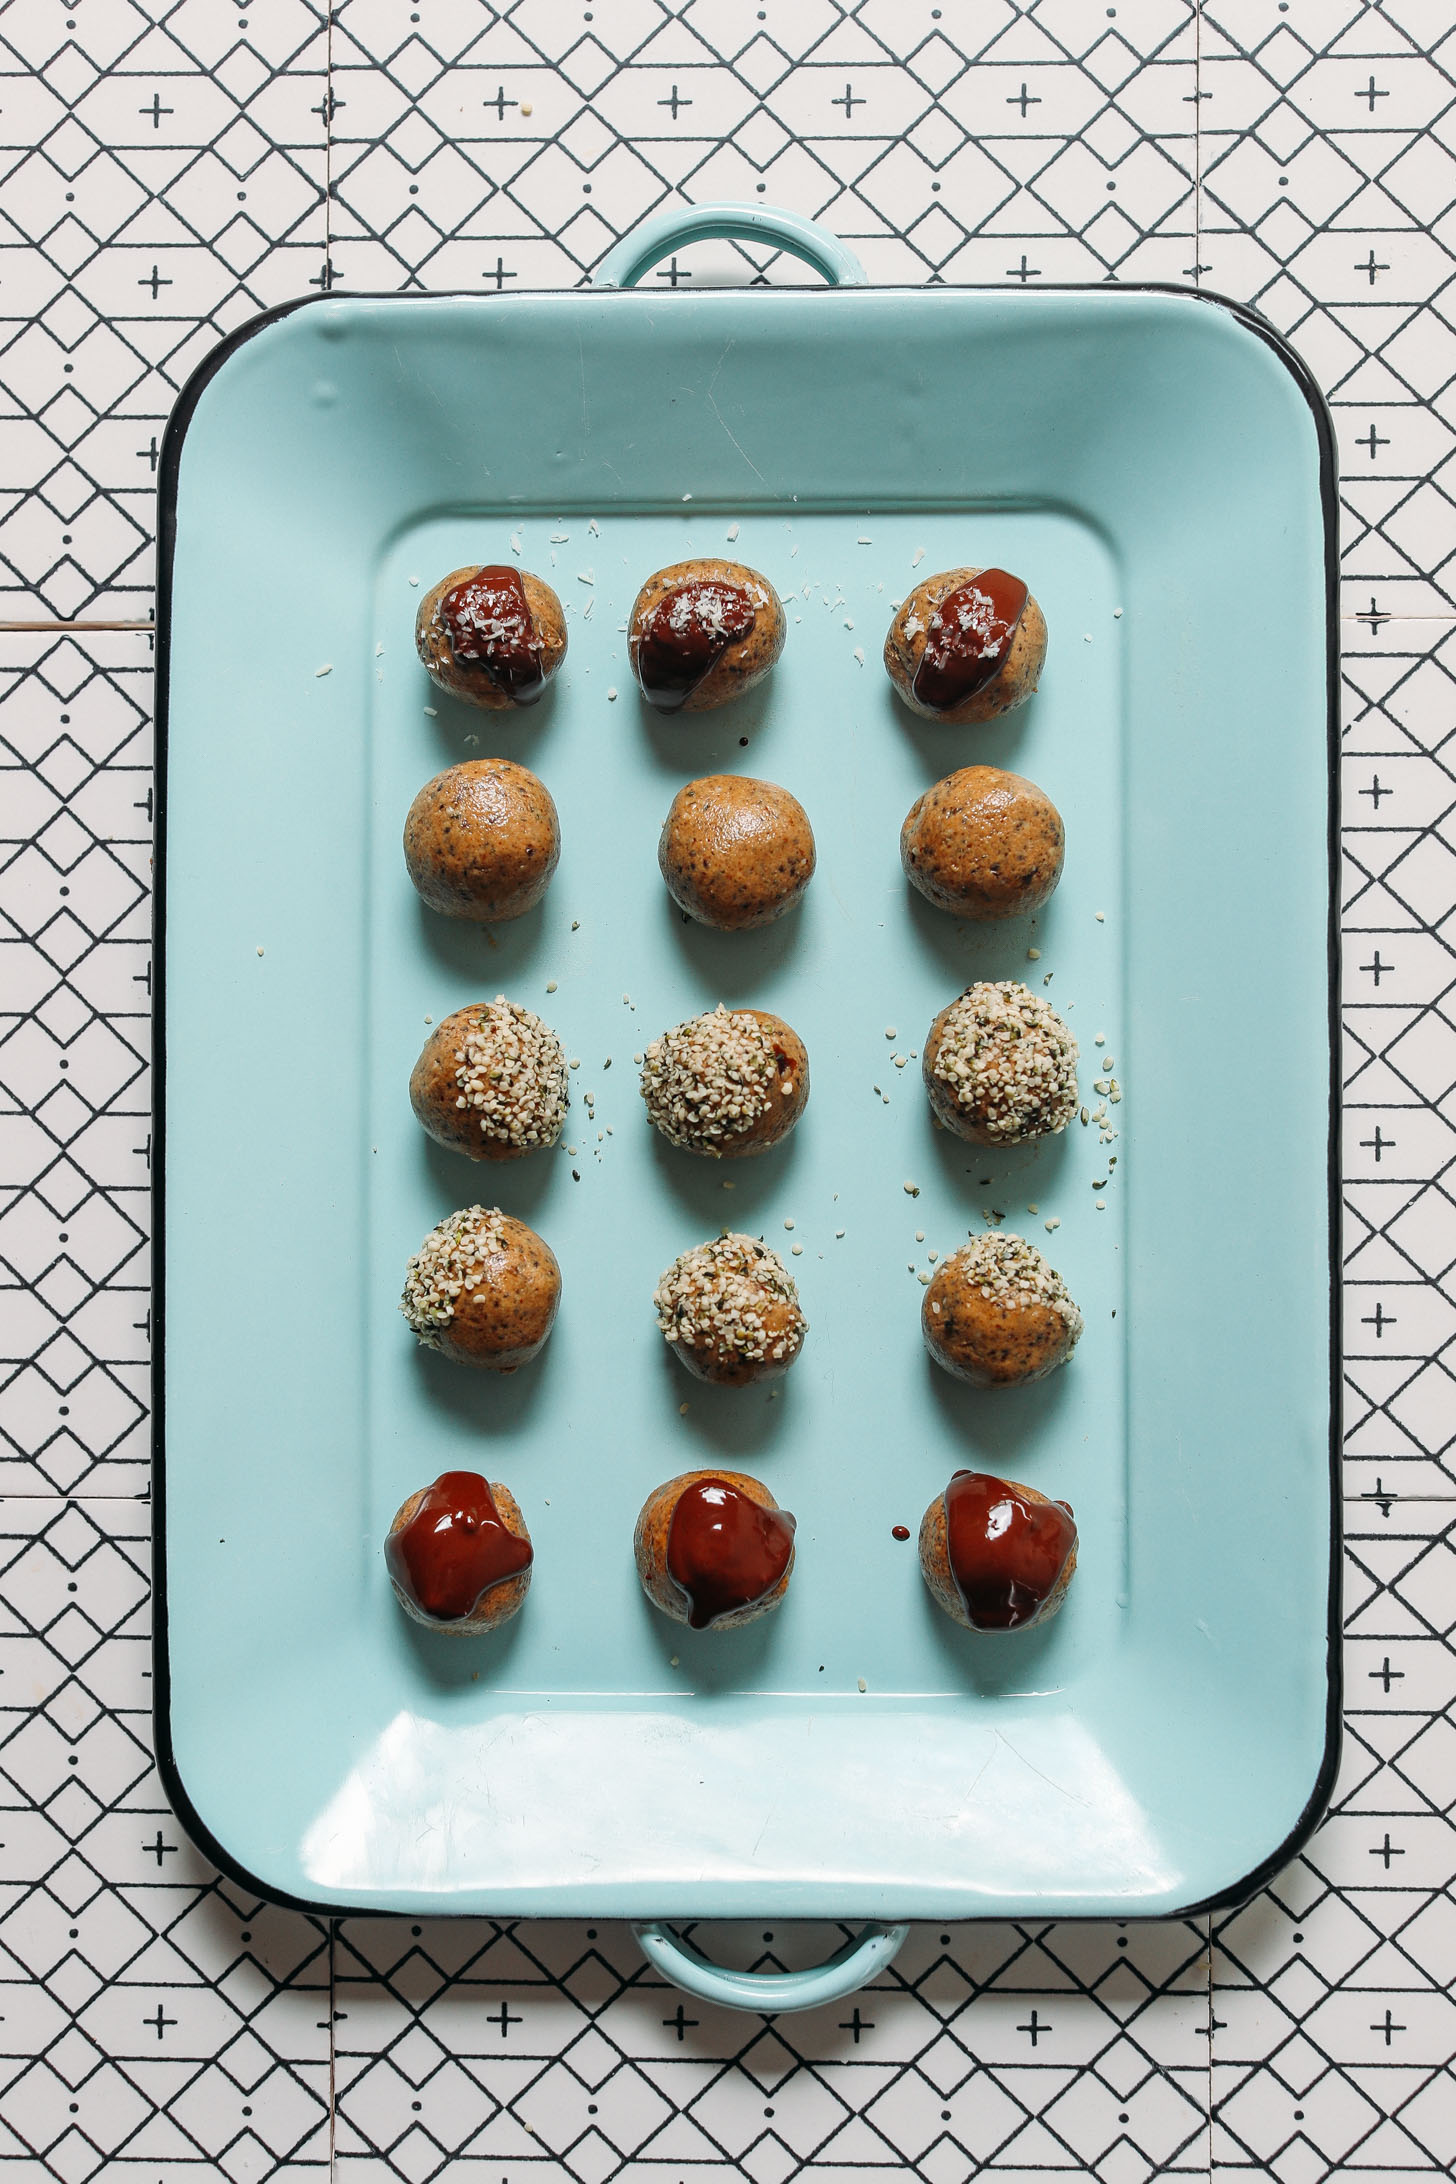 Blue tray filled with Protein Balls topped with melted chocolate and hemp seeds